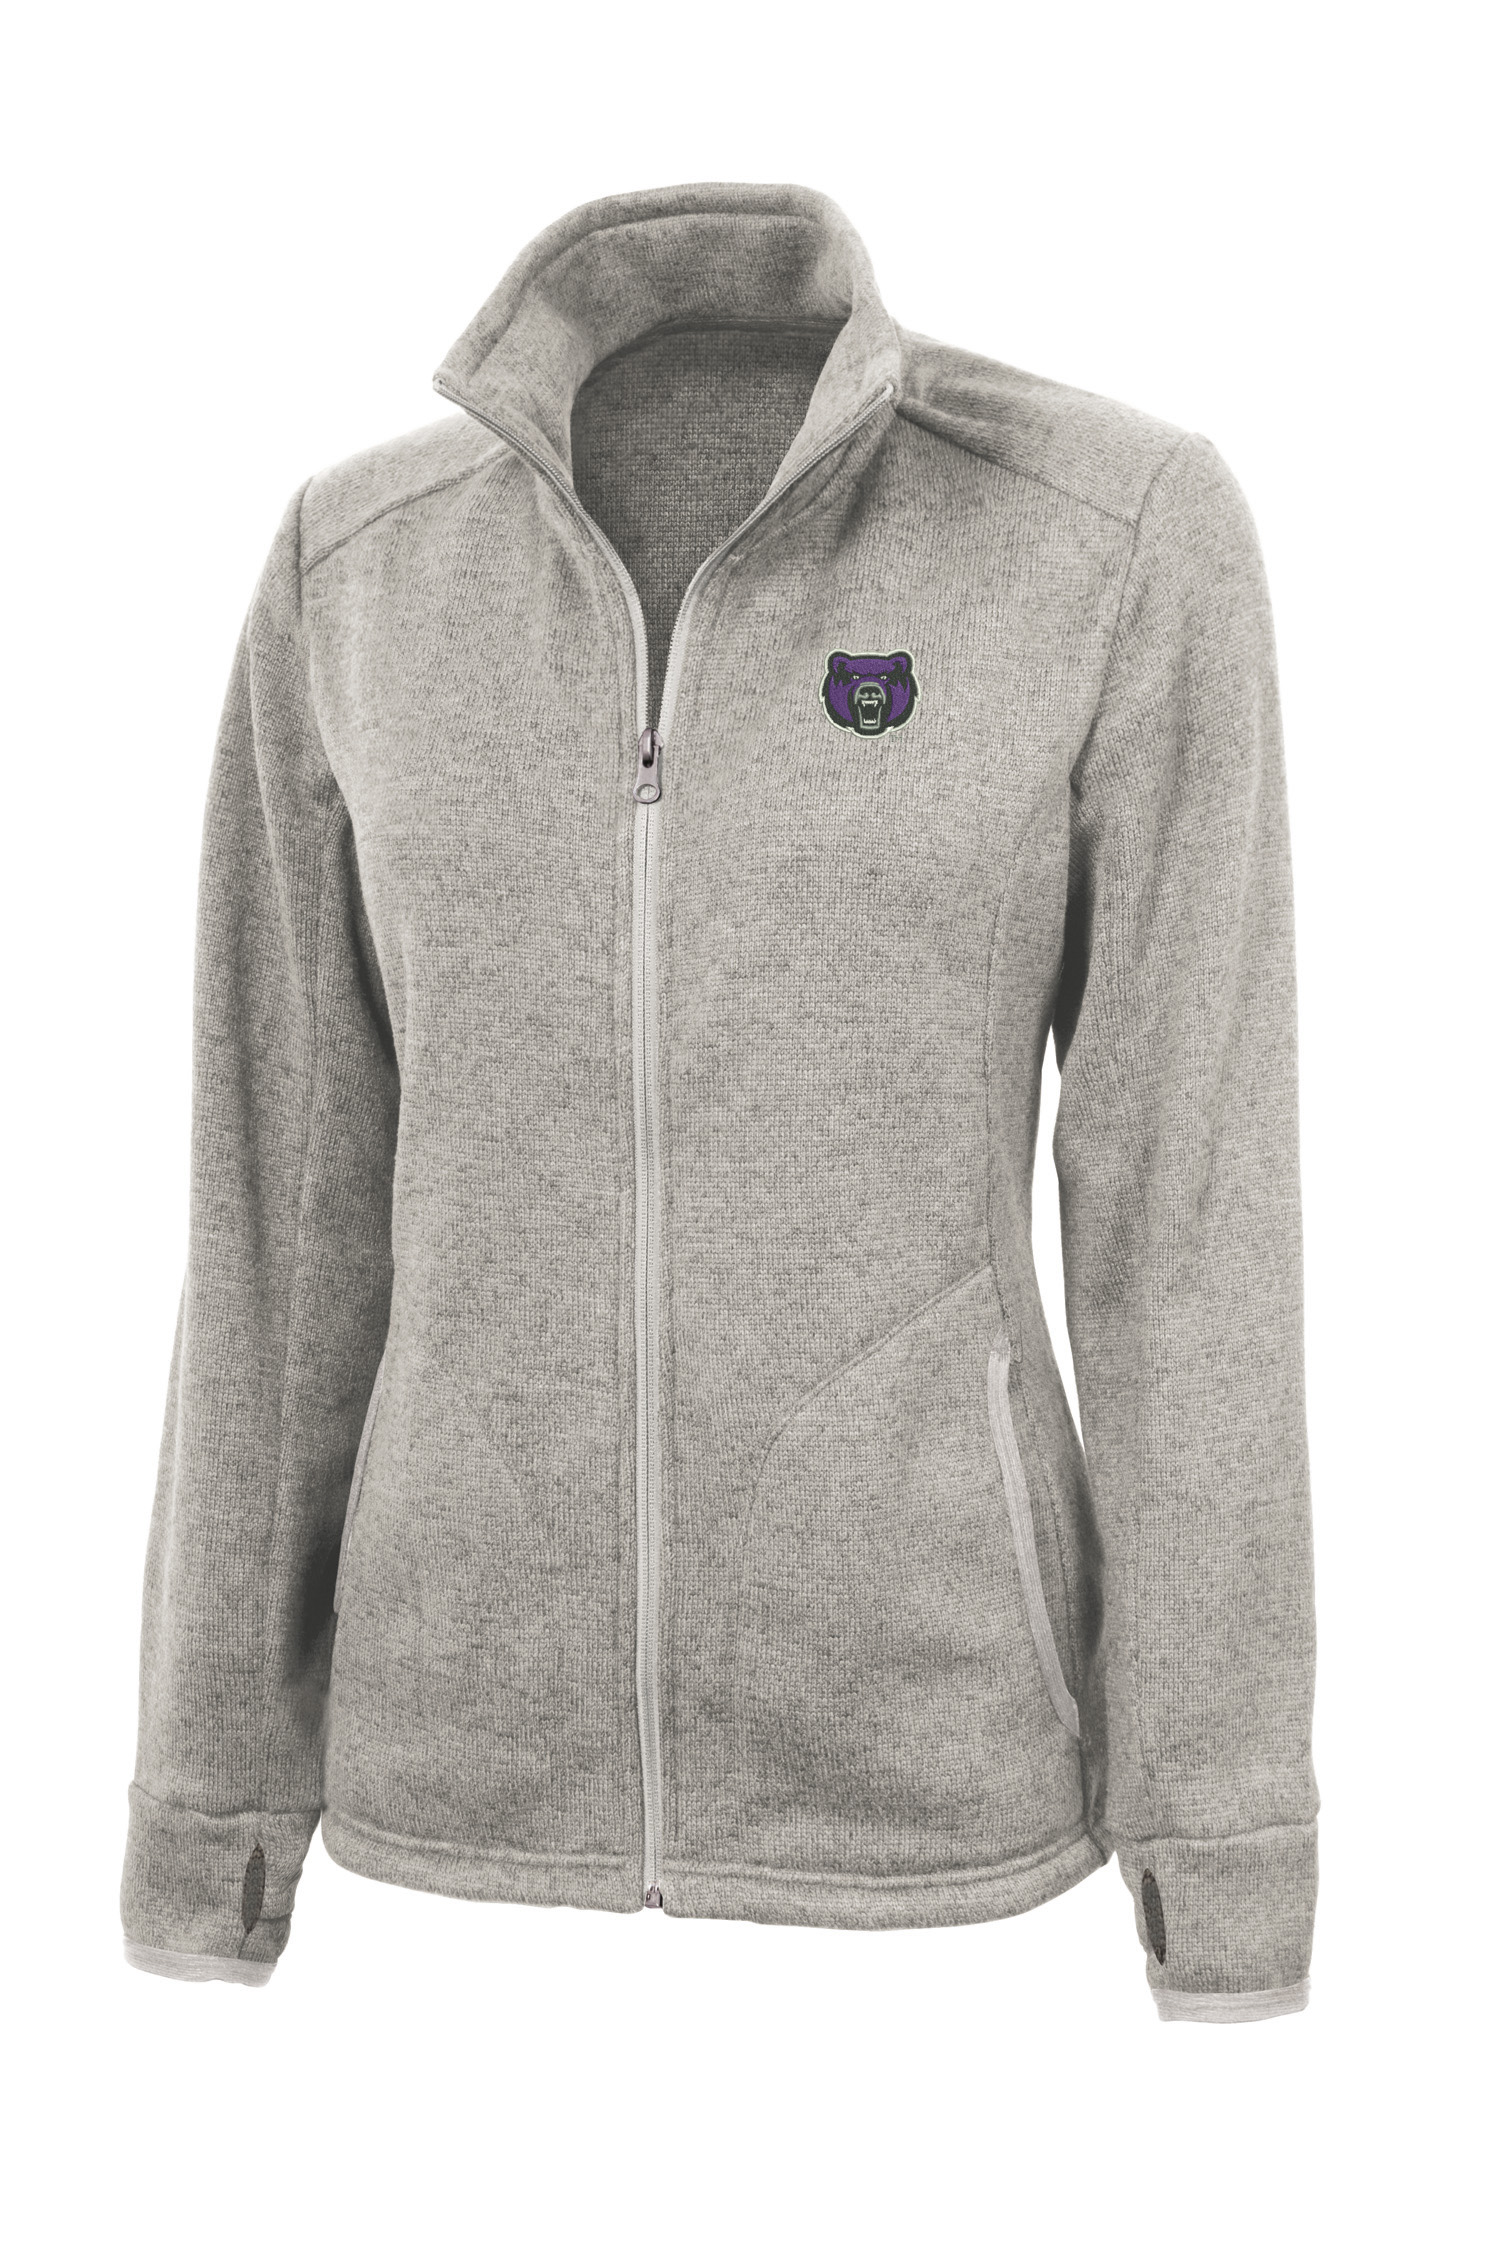 Women's Heathered Fleece Jacket